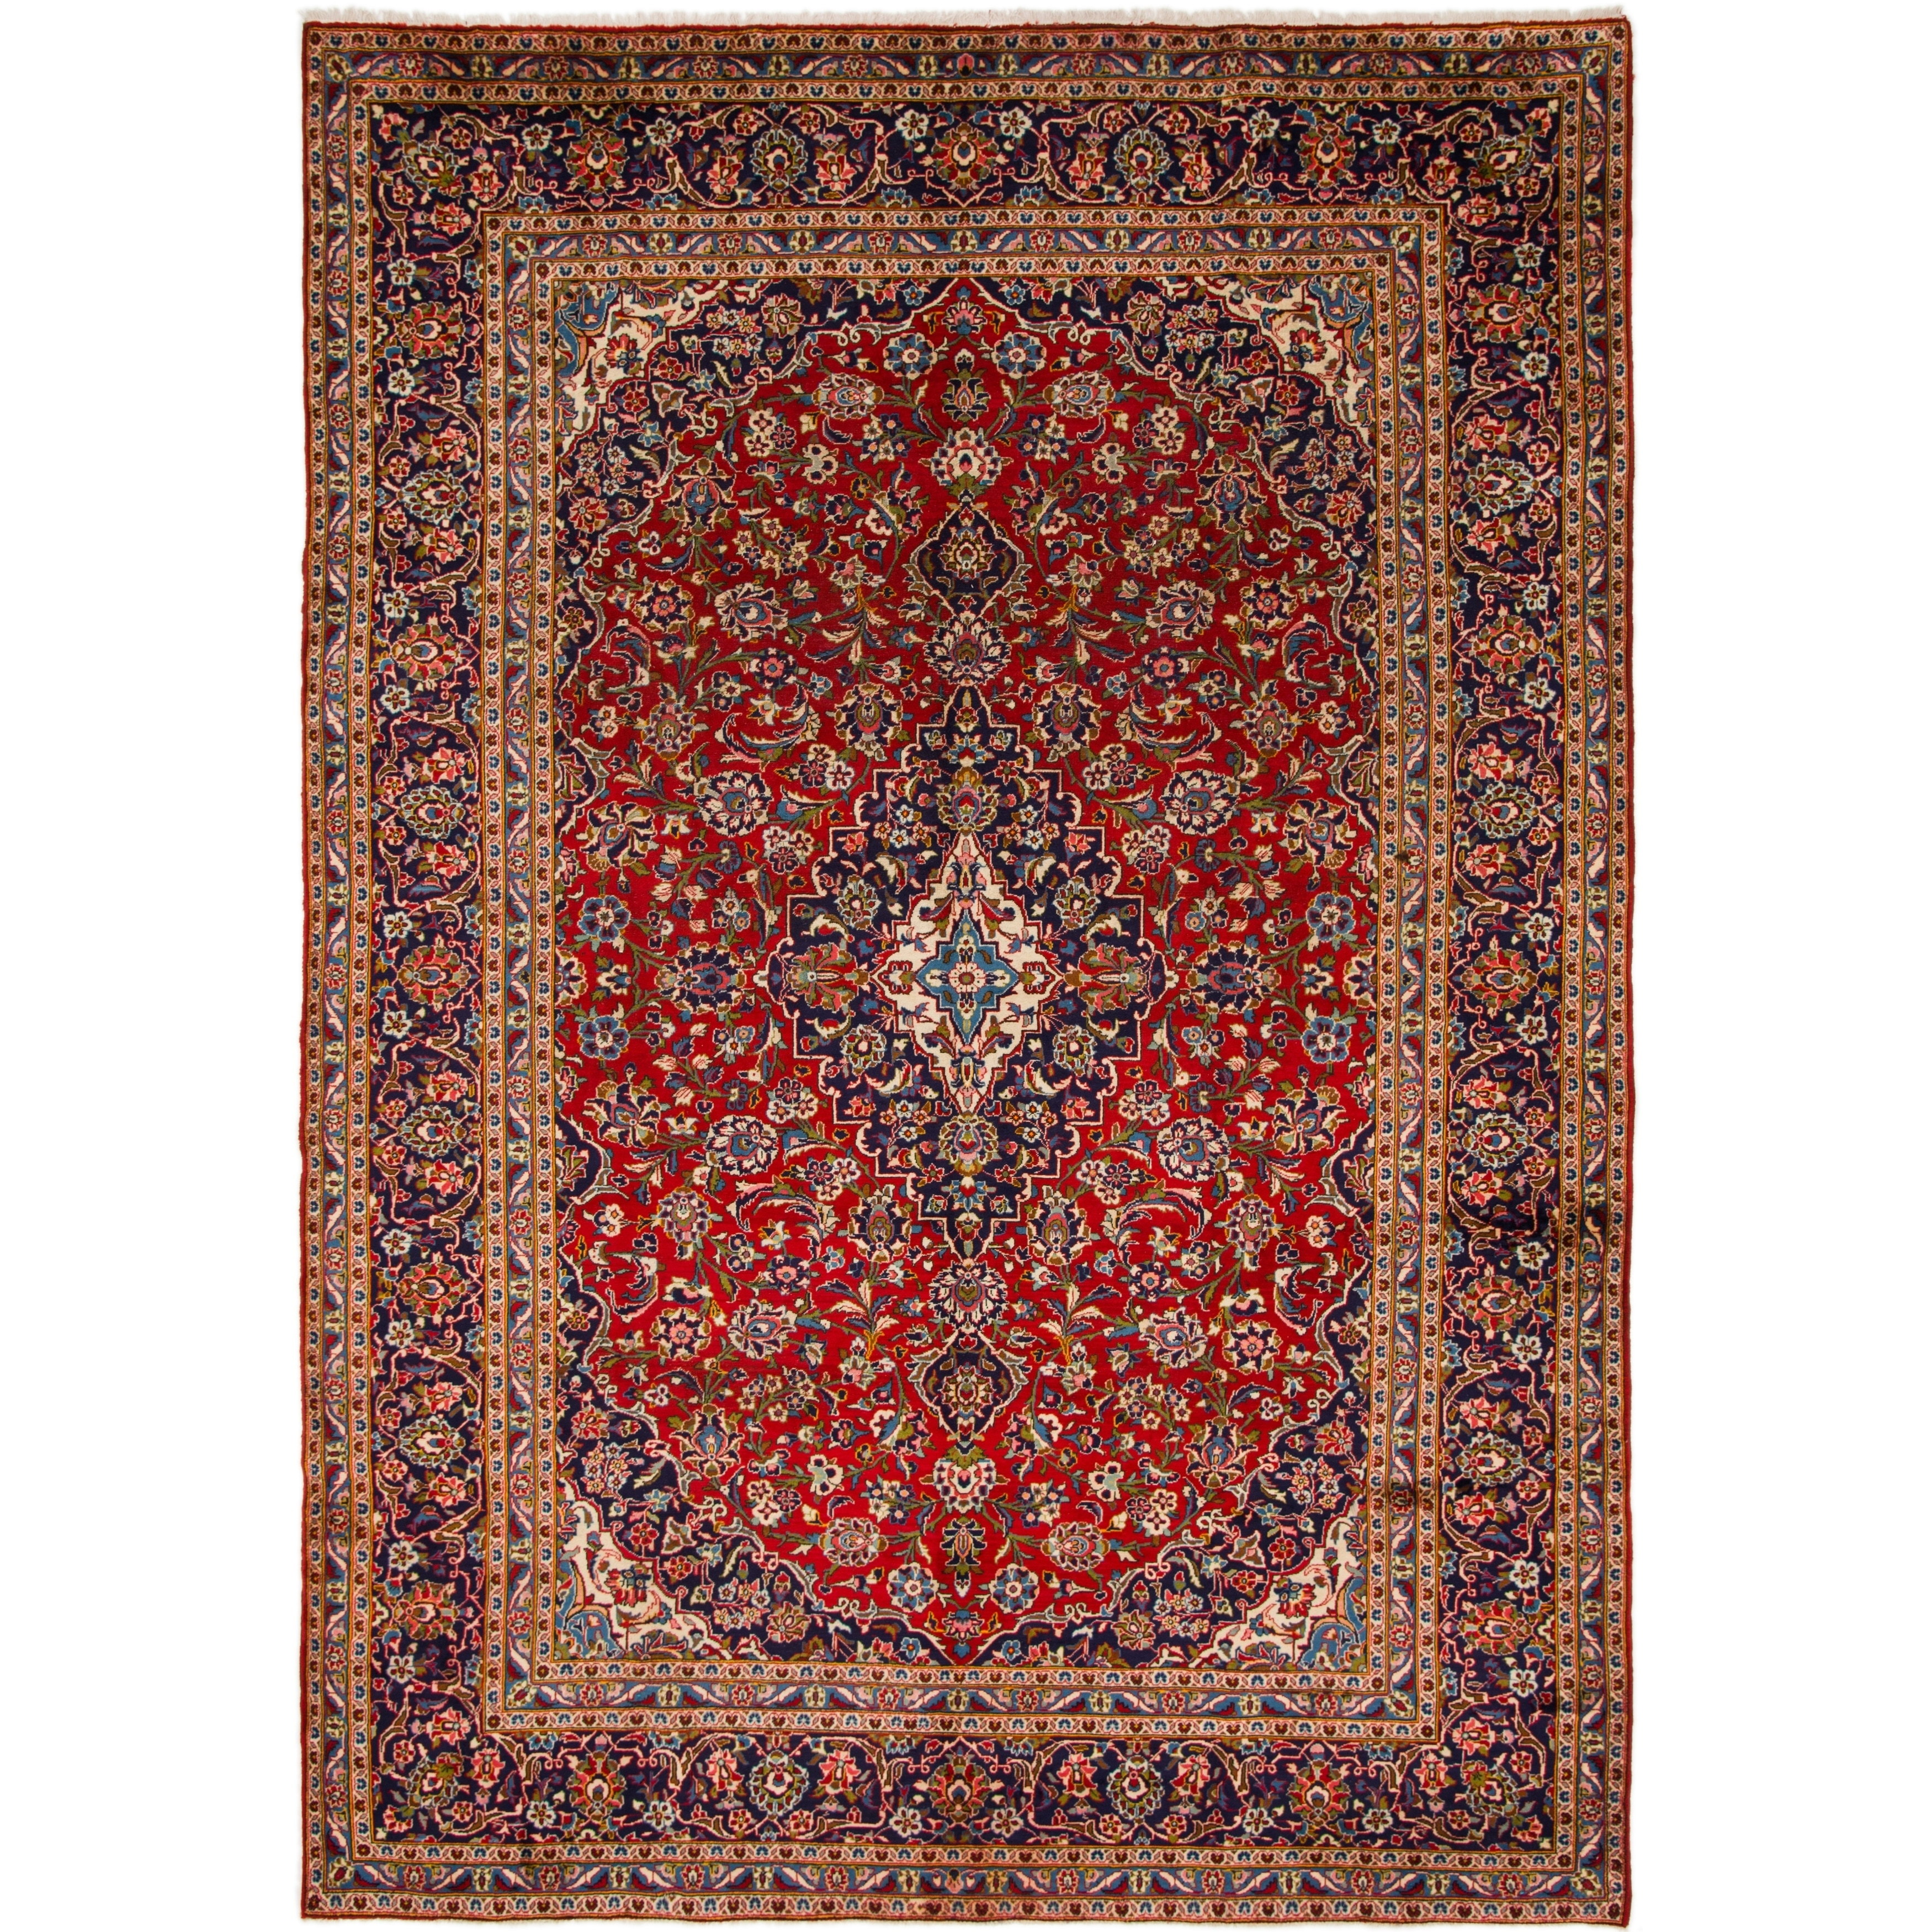 Hand Knotted Kashan Semi Antique Wool Area Rug - 9 7 x 13 7 (Red - 9 7 x 13 7)